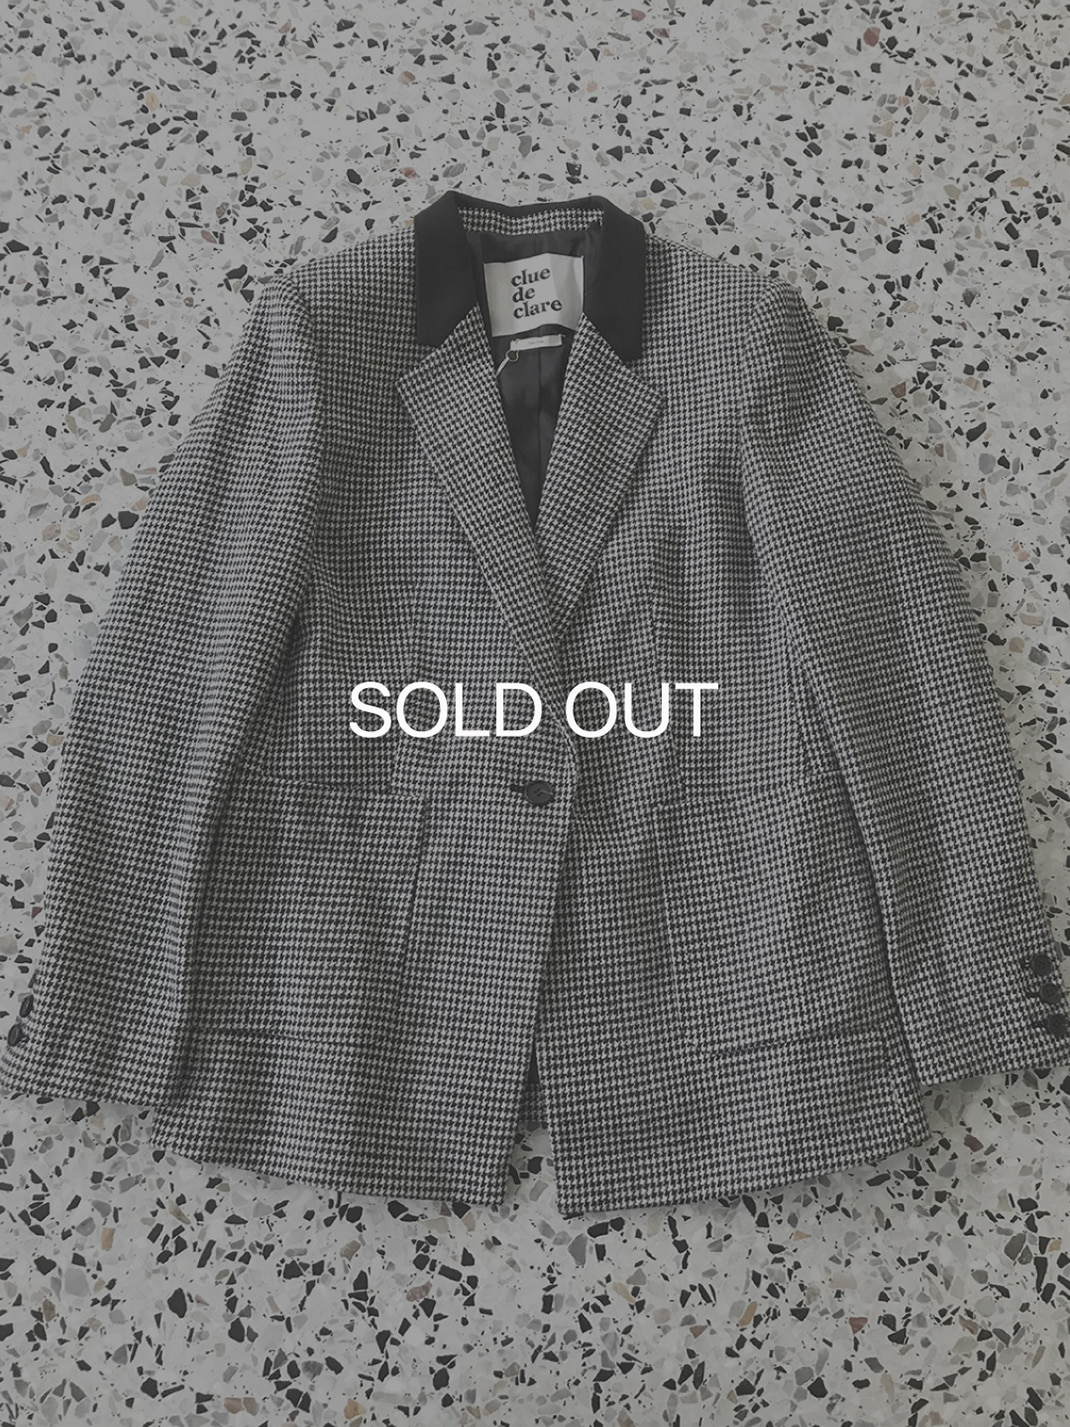 [SAMPLE] hound tooth check Jacket 80%